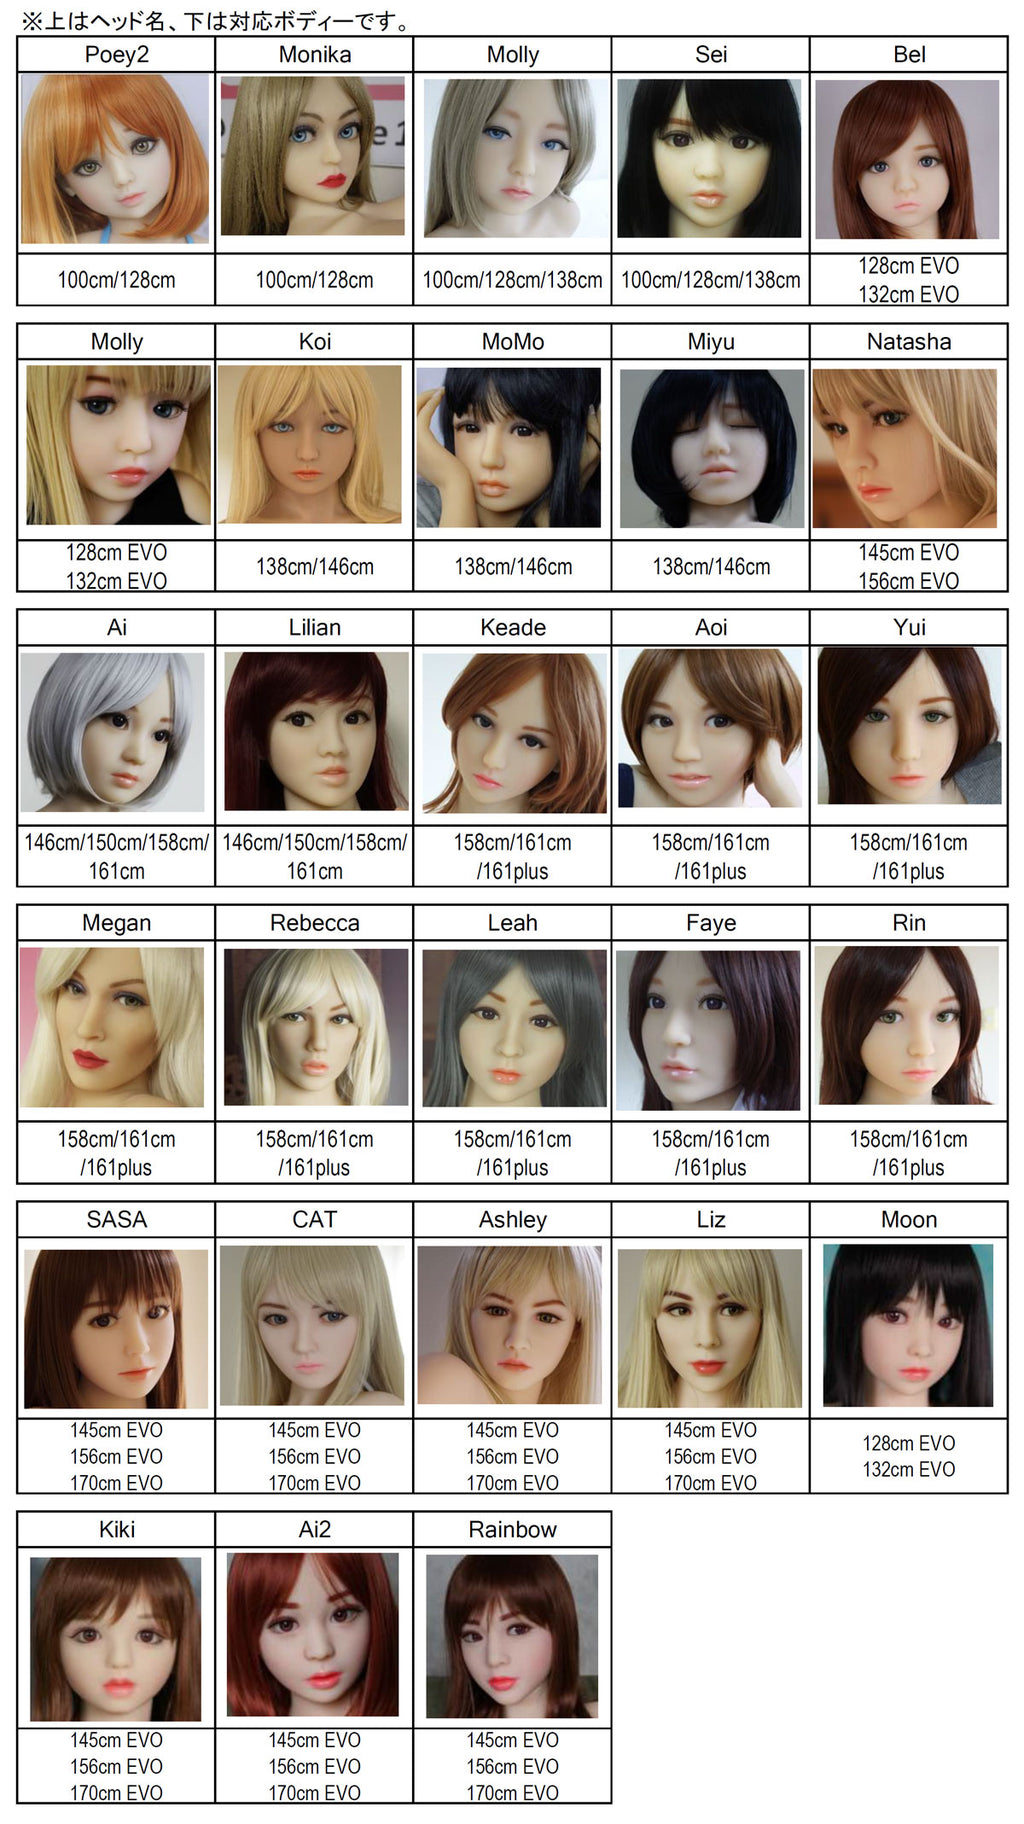 Dollhouse 168 (Evo 168) doll head